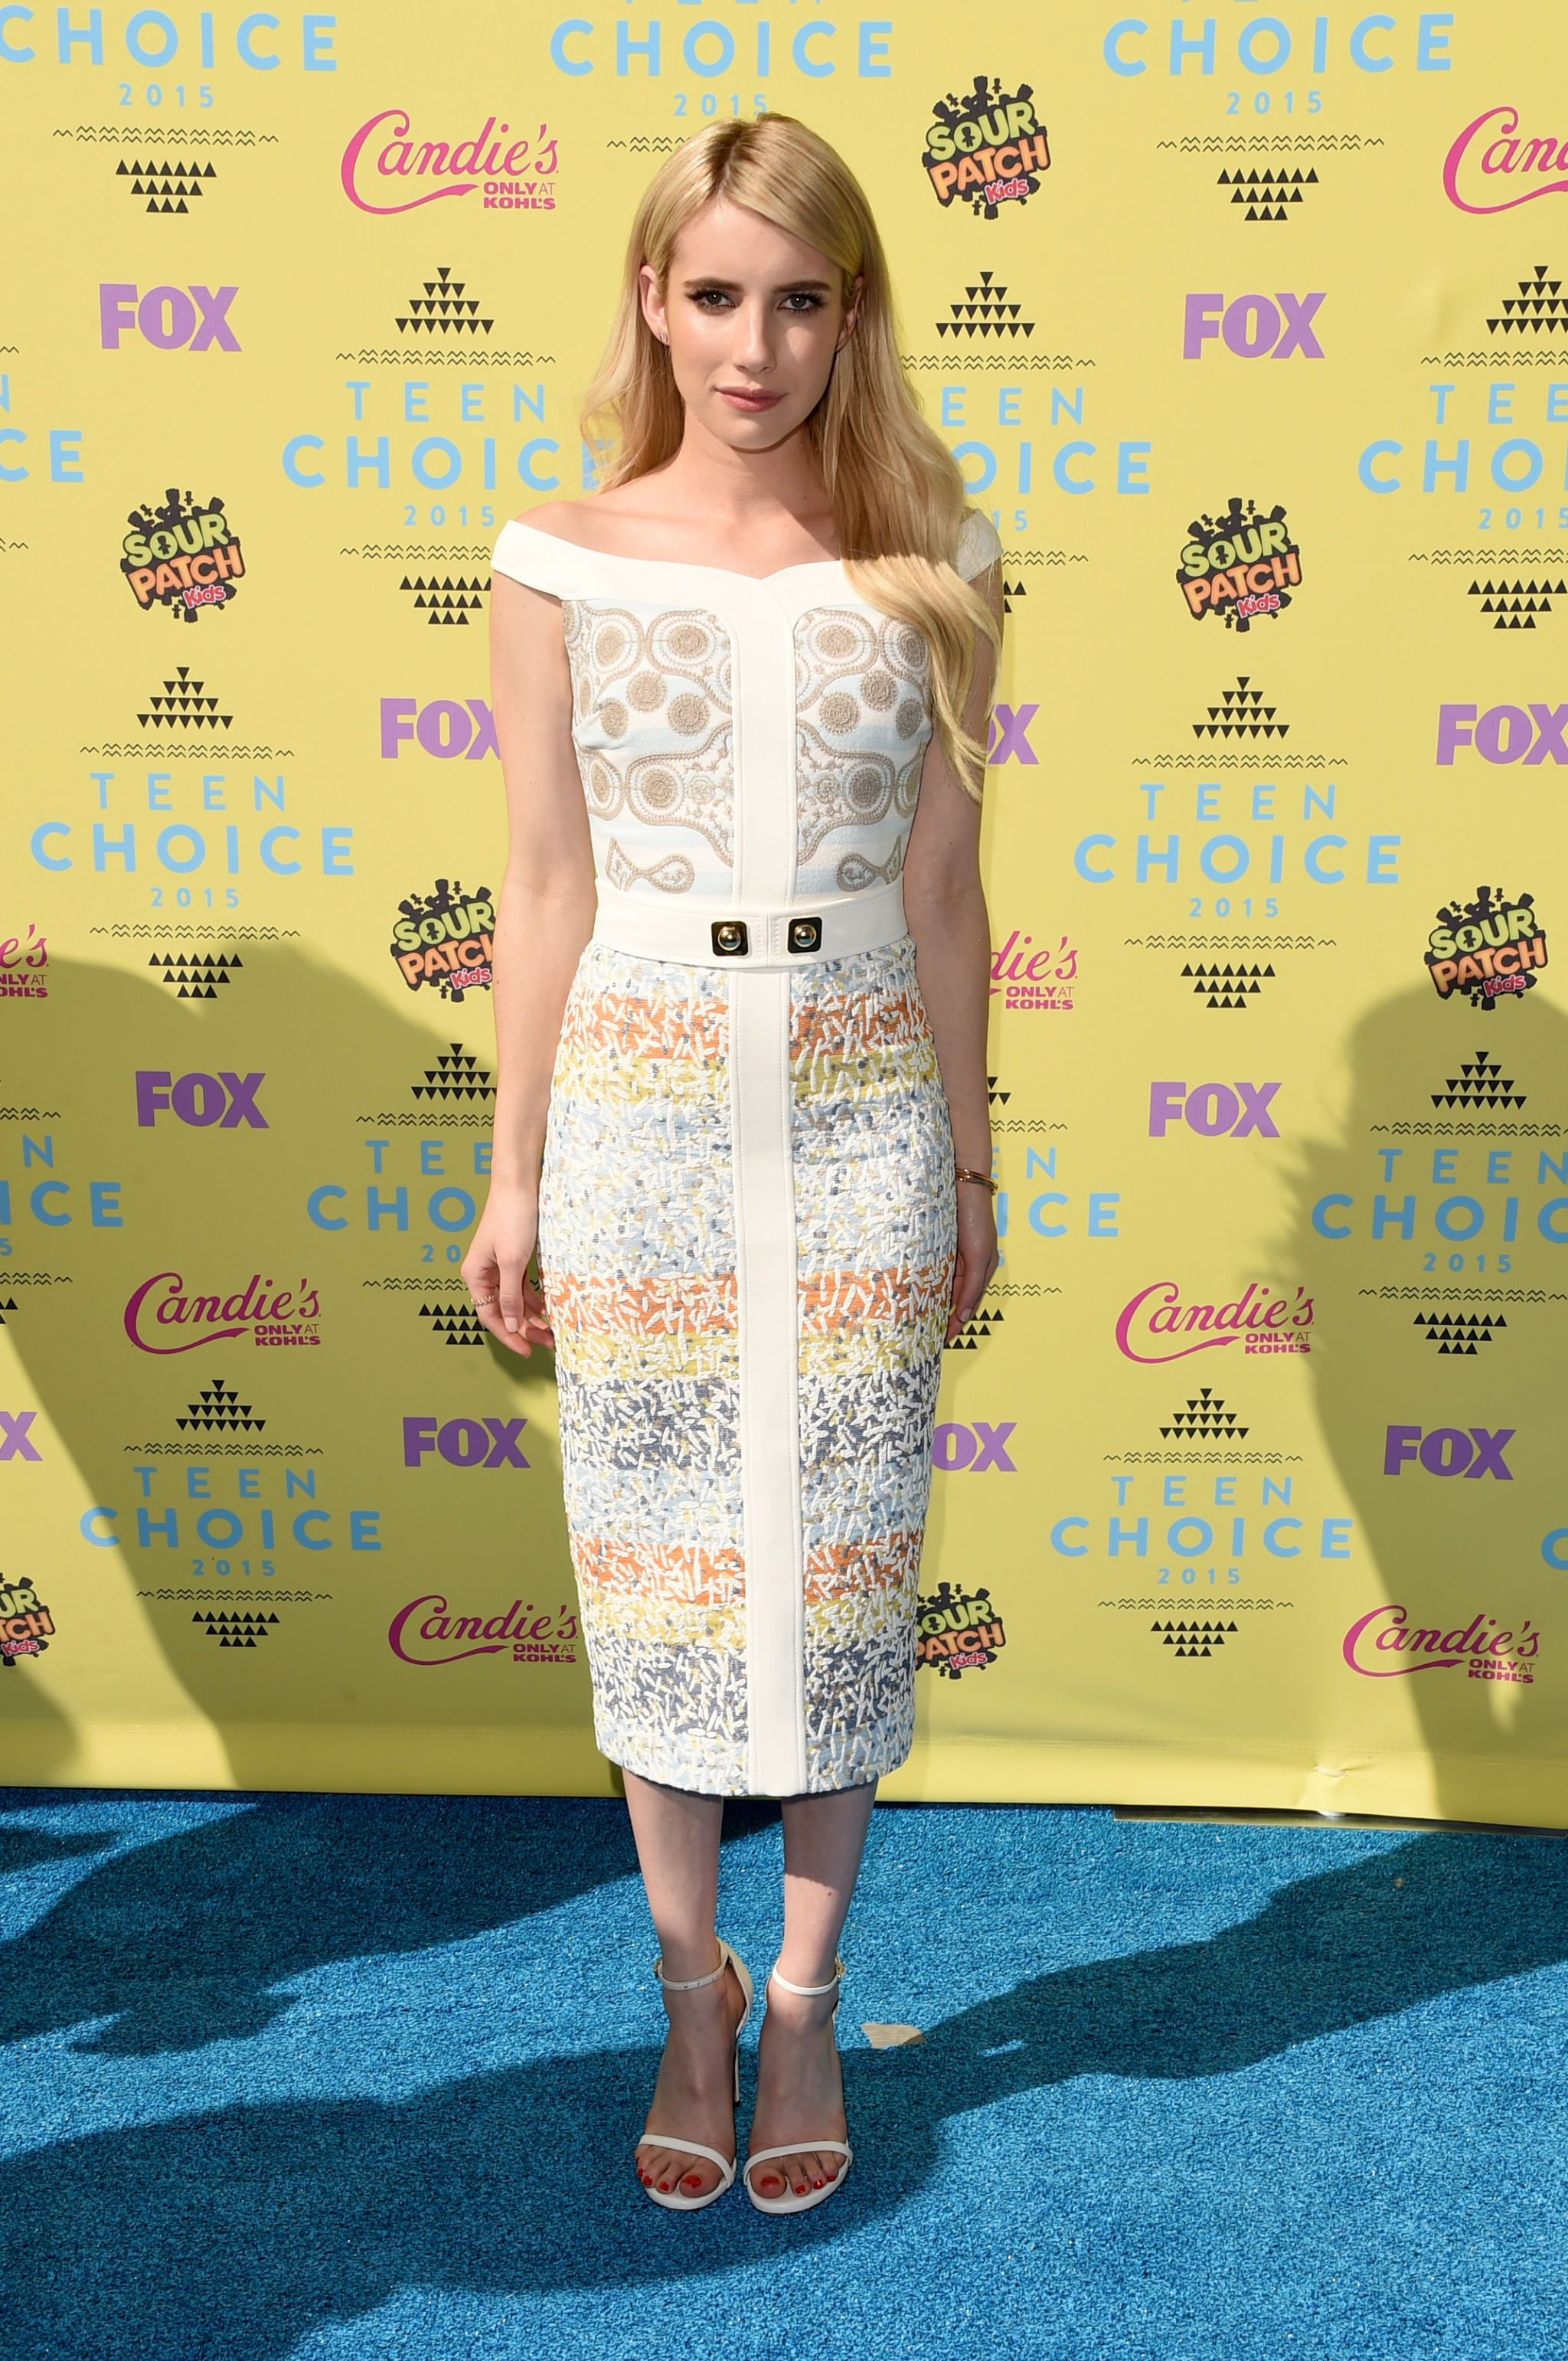 The Best Looks From the 2015 Teen Choice Awards